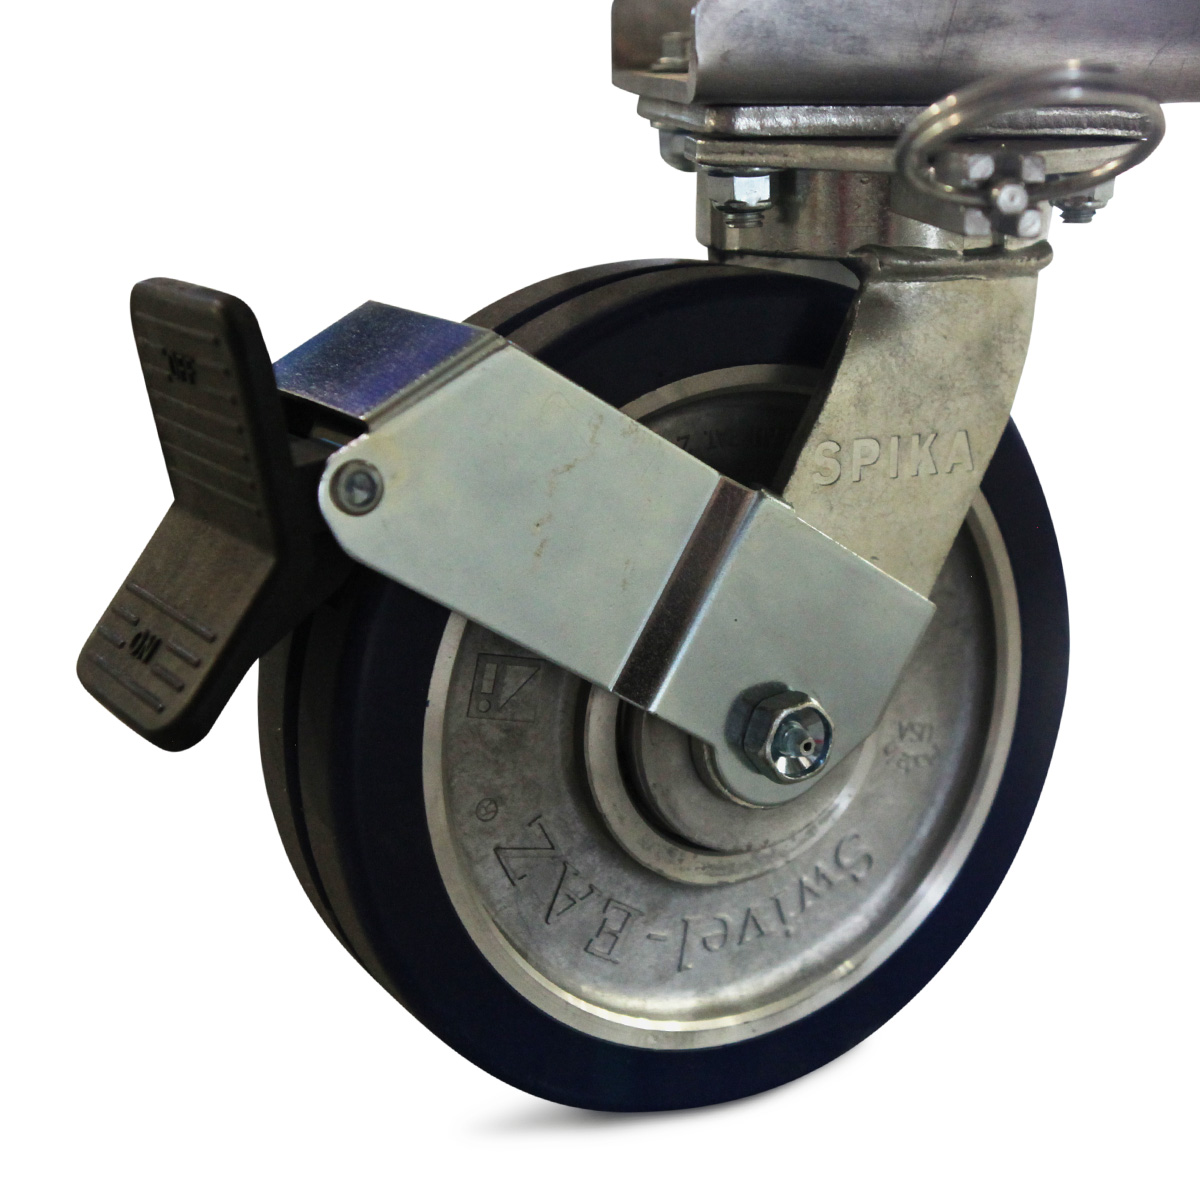 Heavy duty, industrial dual disc caster designed specifically for Spika Design & Manufacturing for use on OSHA compliant, mobile, aluminum work platforms